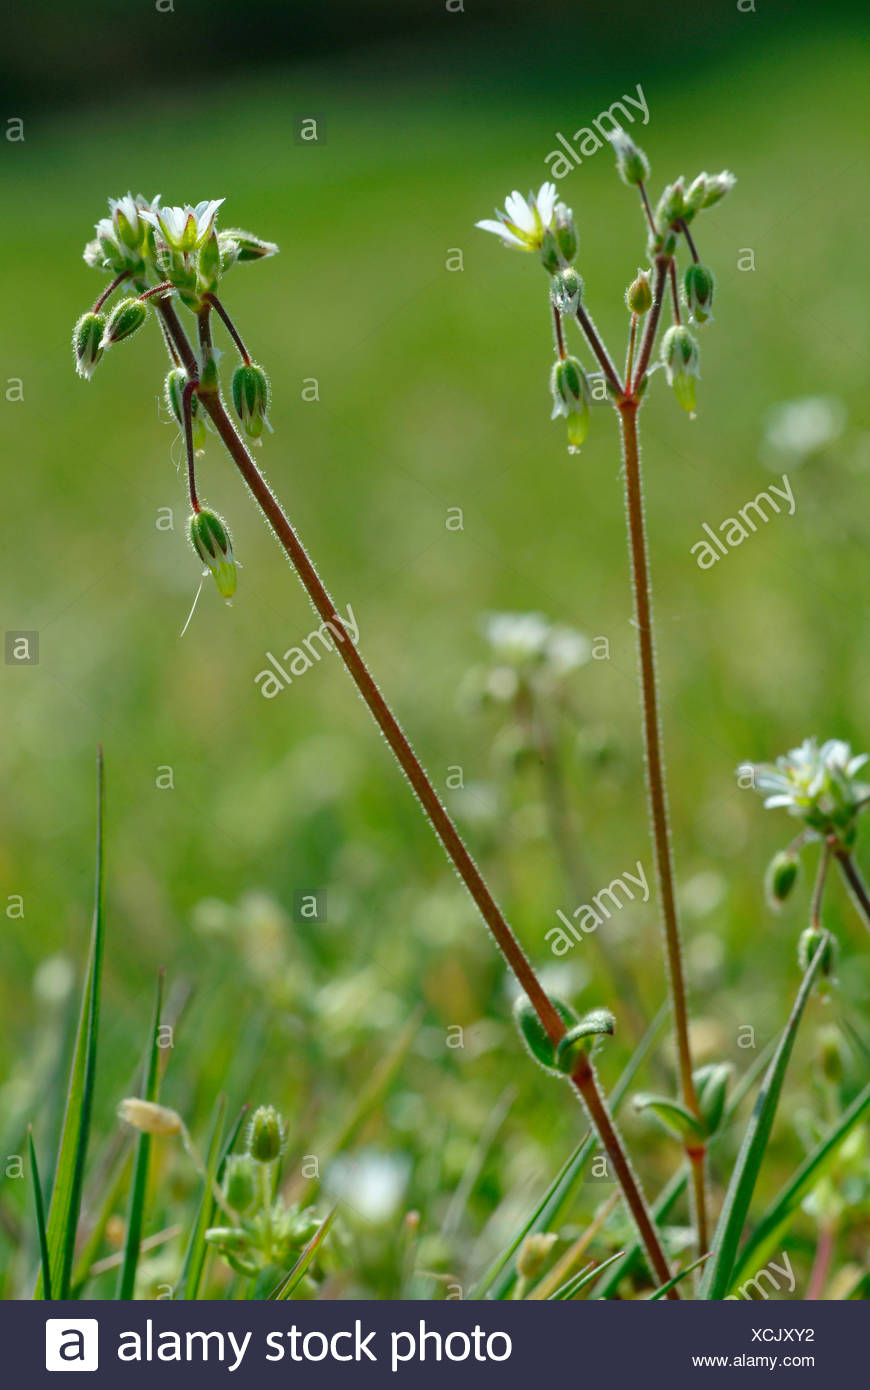 jagged chickweed (Holosteum umbellatum), blooming, Germany - Stock Image